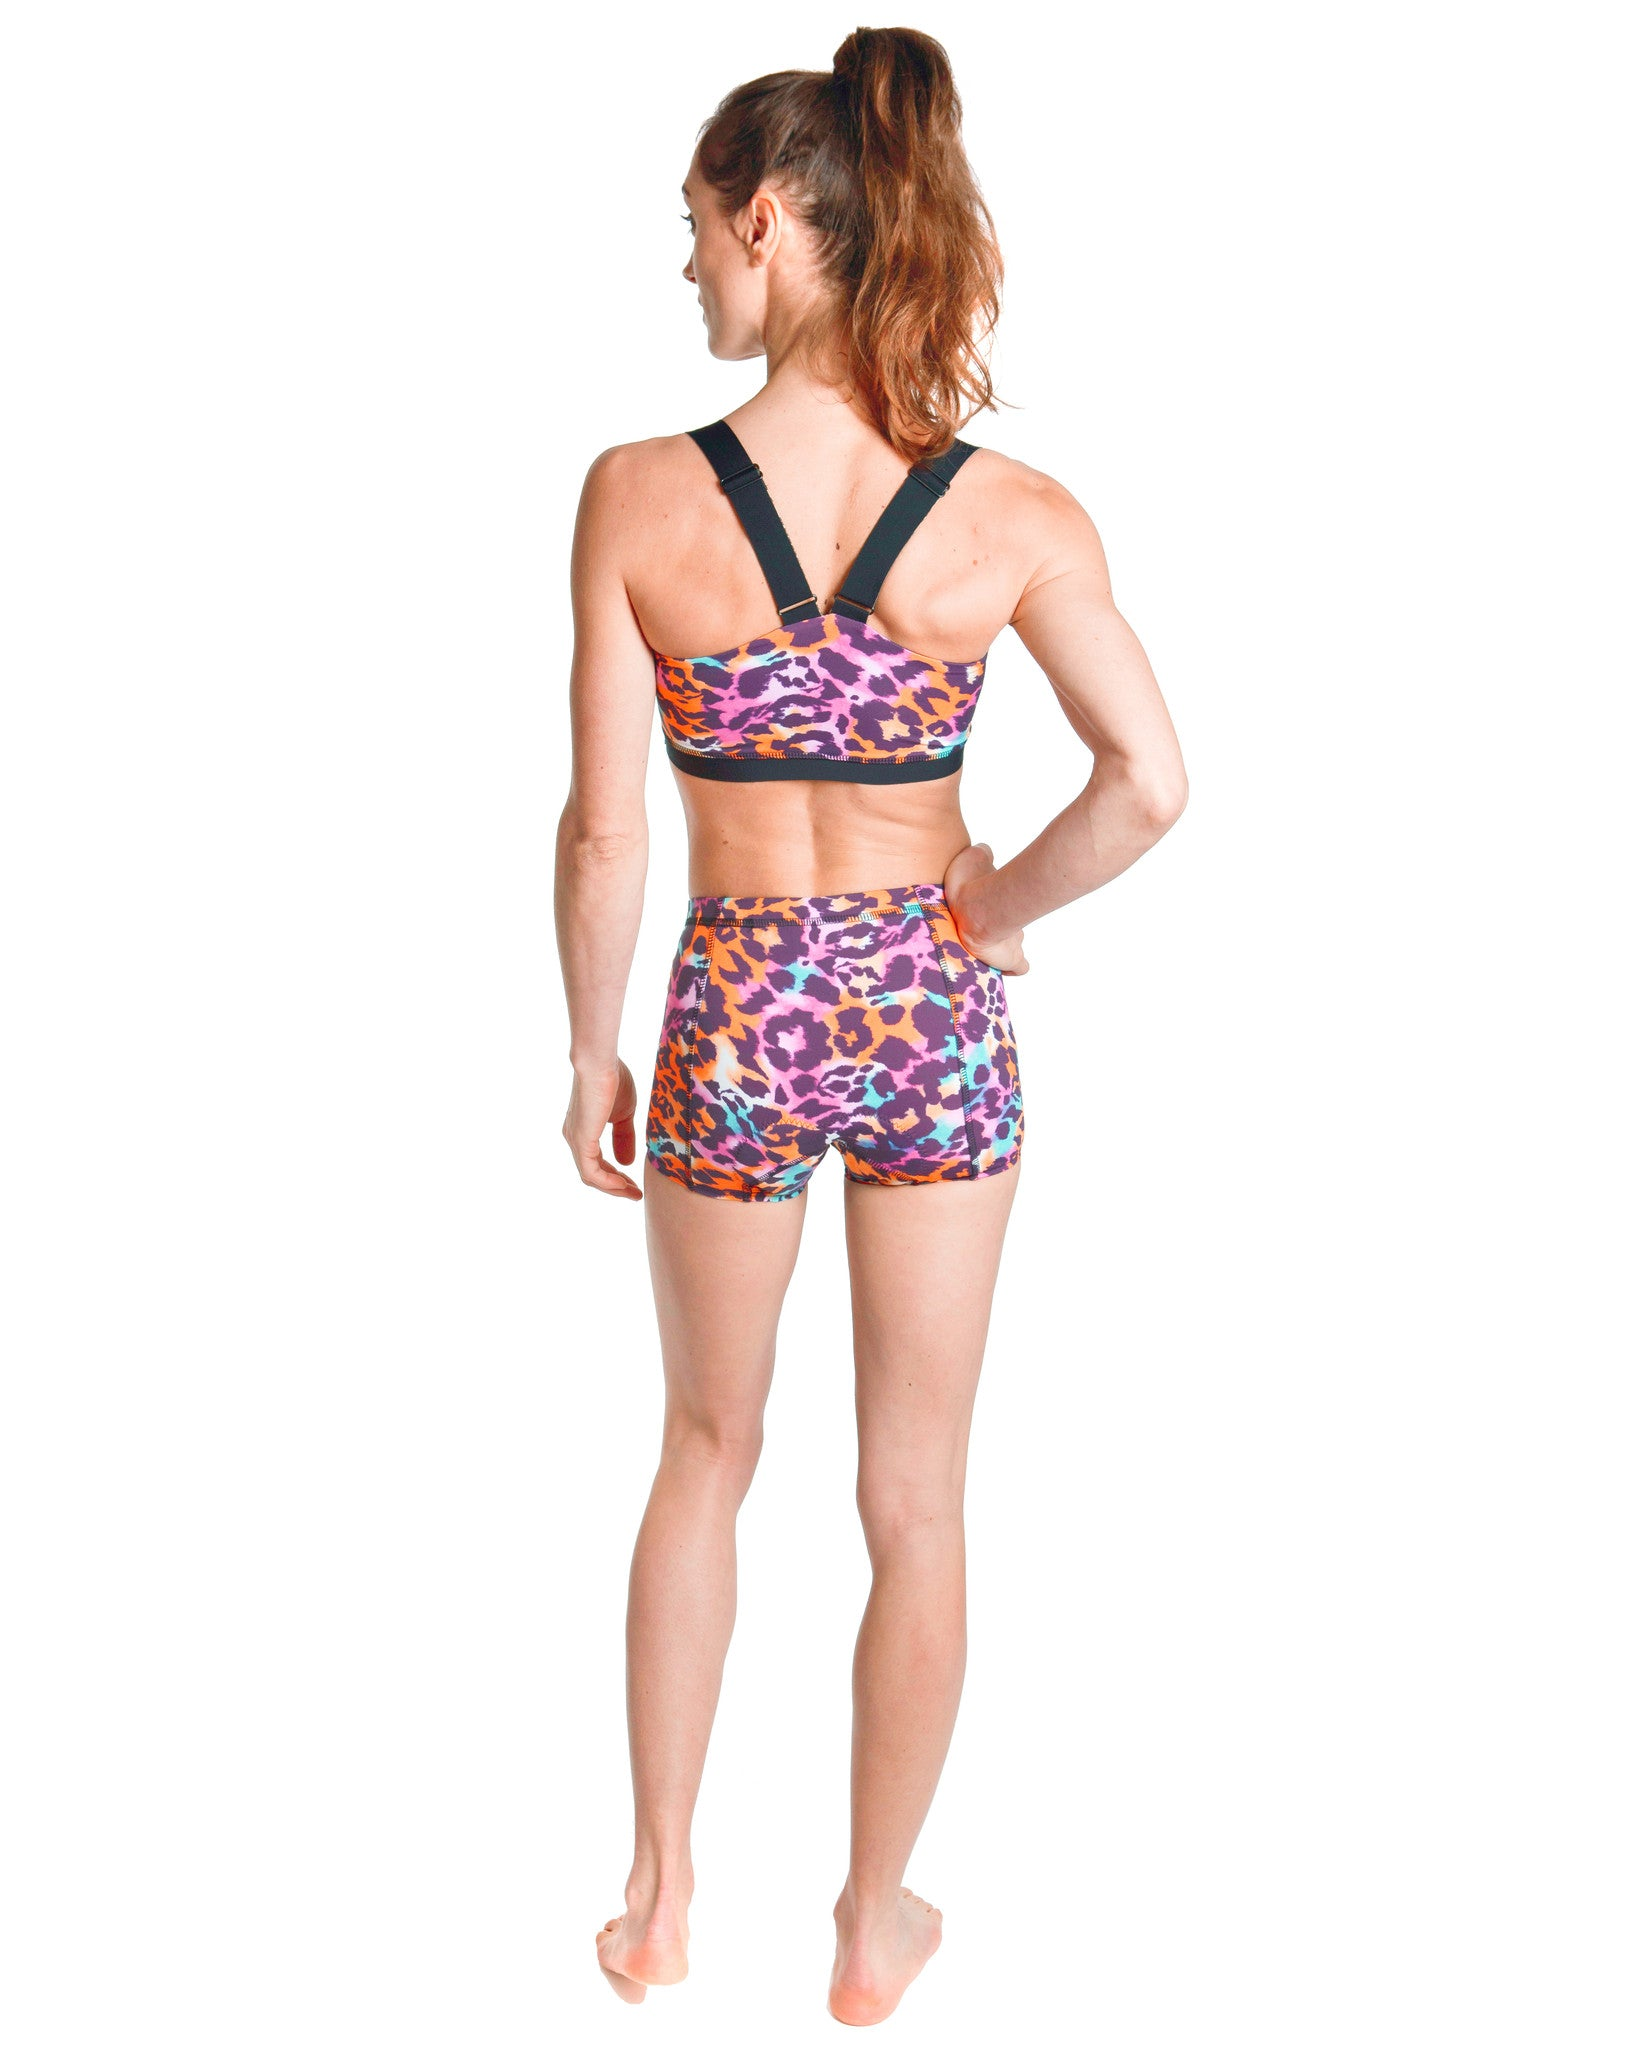 LPRD Pink Cycling Hotpants | Back View